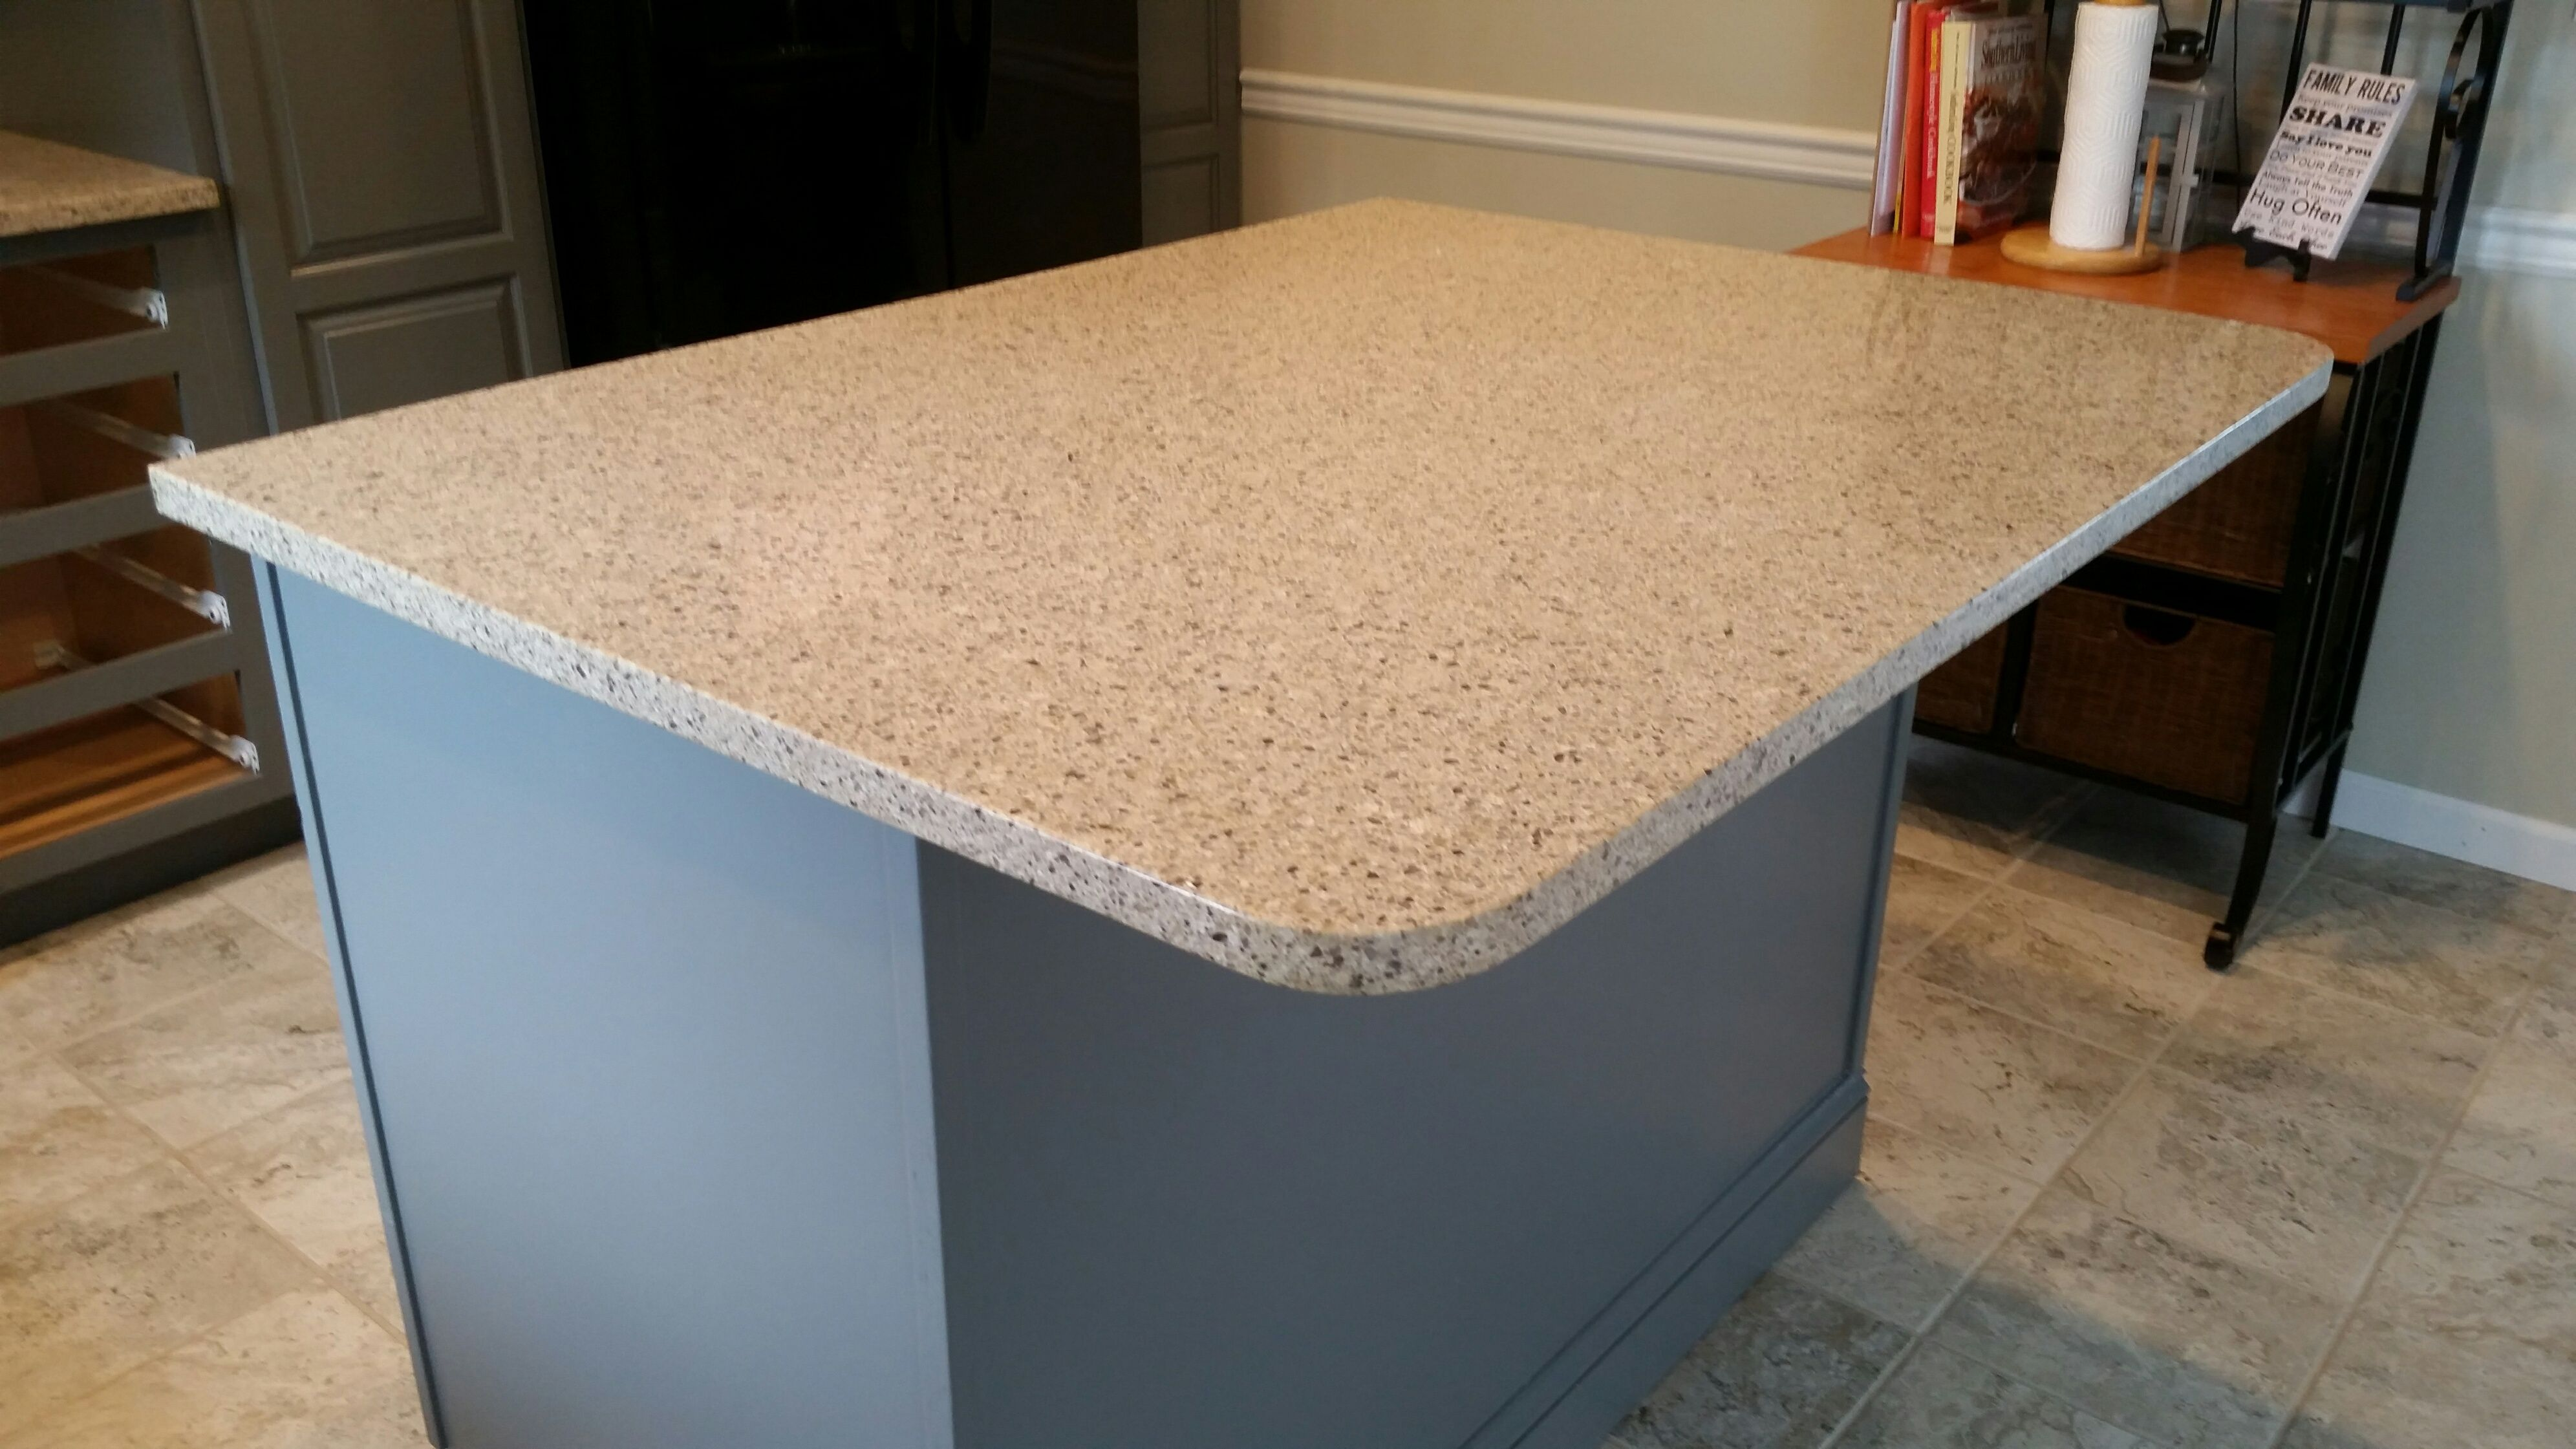 How Much Are Quartz Countertops Installed Silver Lake Lg Viatera Quartz Kitchen Countertop Install